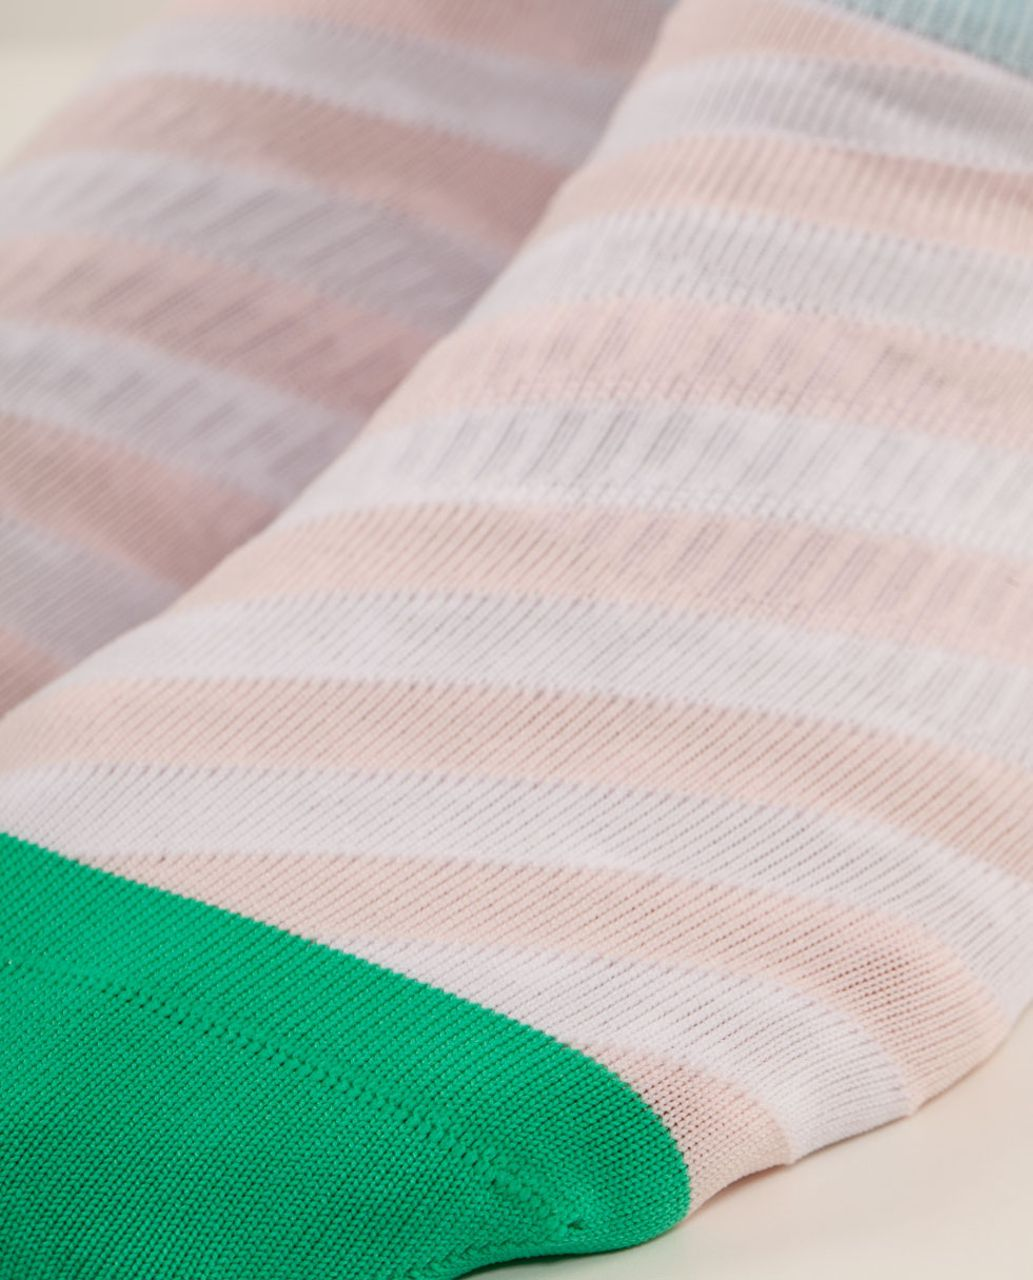 Lululemon Run For Ice Cream Sock - Parlour Stripe Parfait Pink